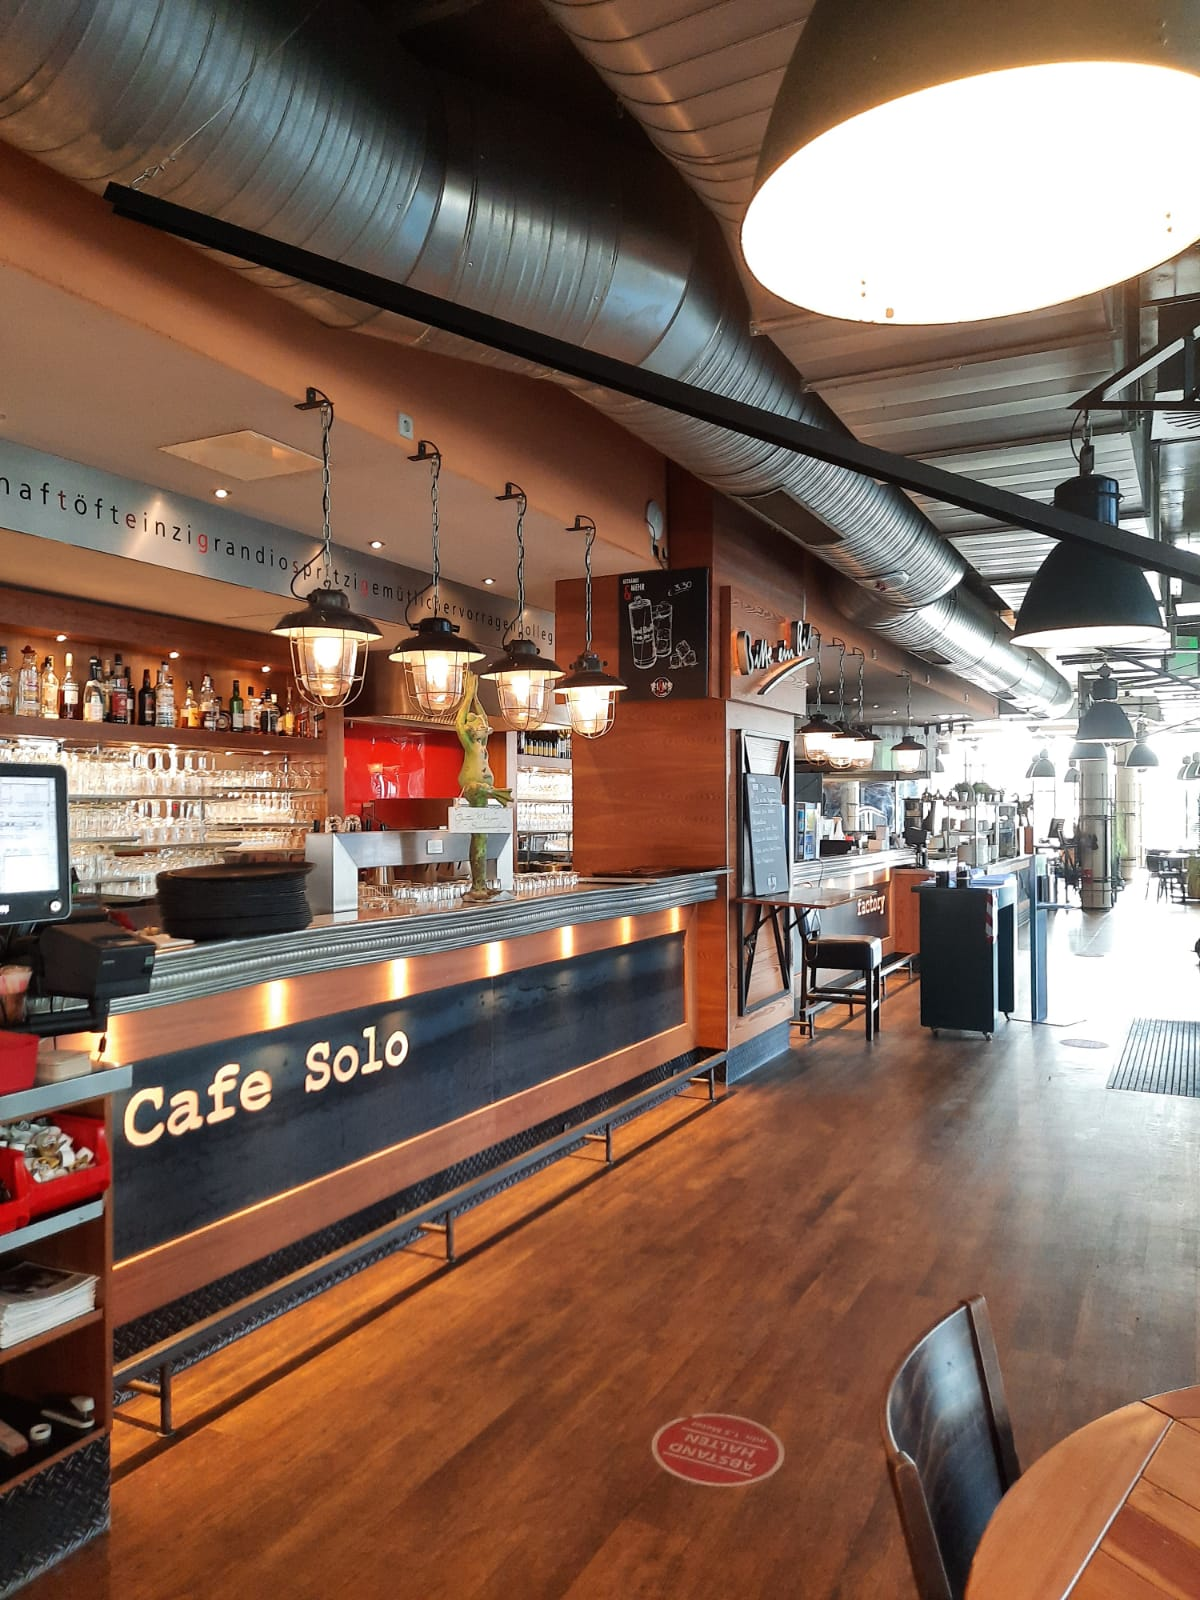 Cafe Solo Dortmund Bar